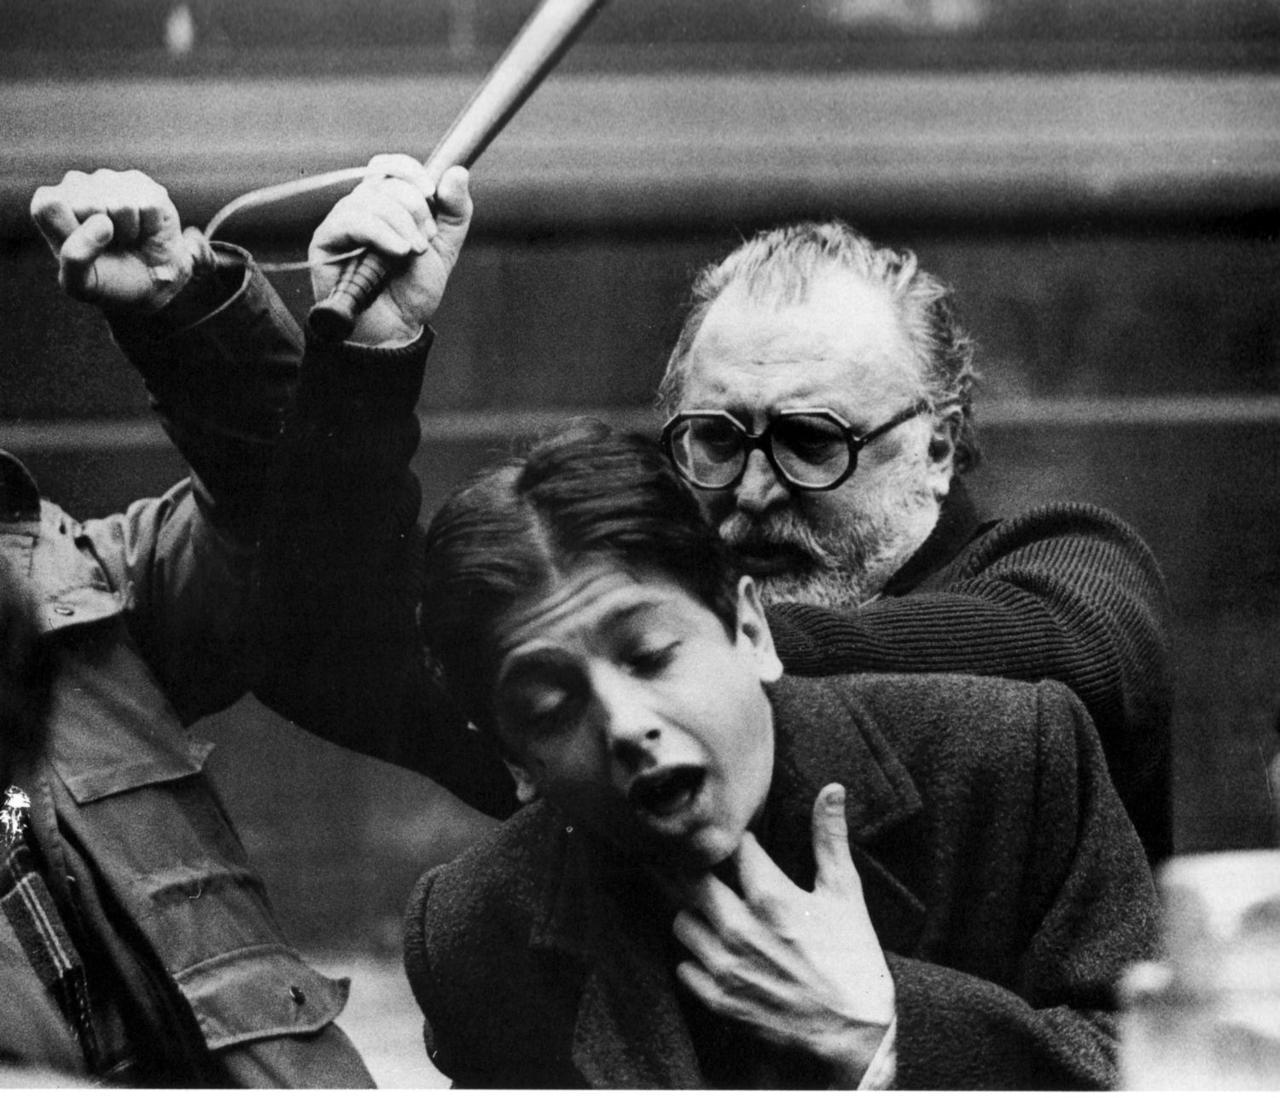 i12bent:  Sergio Leone, Italian film director and undisputed master of the  'spaghetti western' genre: Jan. 3, 1929 - 1989… Leone, whose  signature use of close-ups and monumental formats gives his films their  unmistakable look, also directed epics such as Once Upon a Time in America, dramatising the immigrant experience via another set genre - that of the gangster dynasty flick… Photo of Leone directing a scene in Once Upon A Time in America